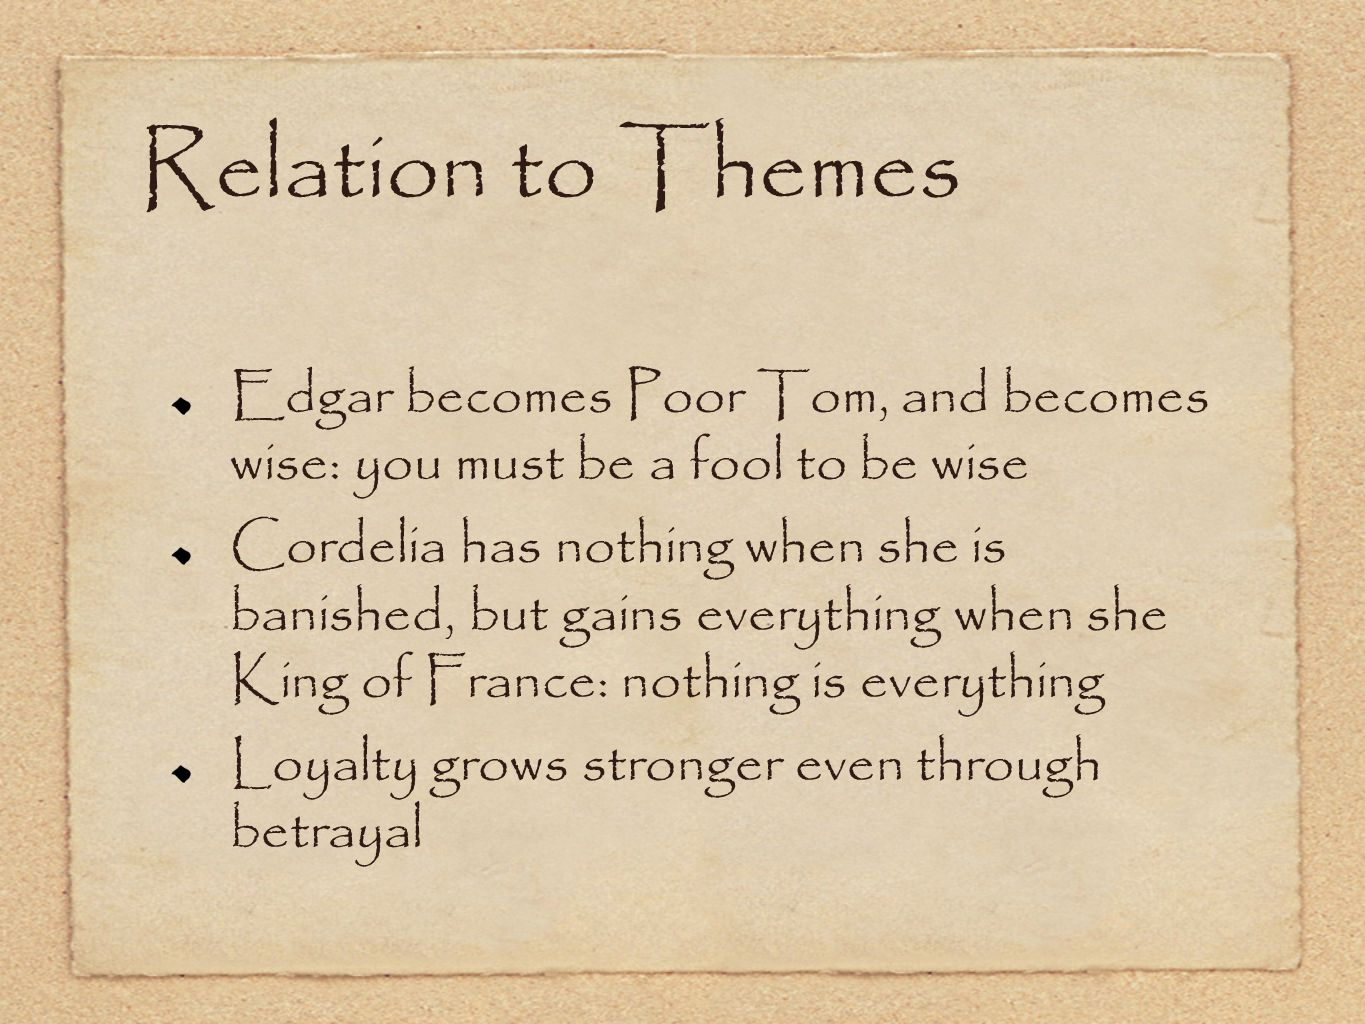 Relation to Themes Edgar becomes Poor Tom, and becomes wise: you must be a fool to be wise Cordelia has nothing when she is banished, but gains everything when she King of France: nothing is everything Loyalty grows stronger even through betrayal